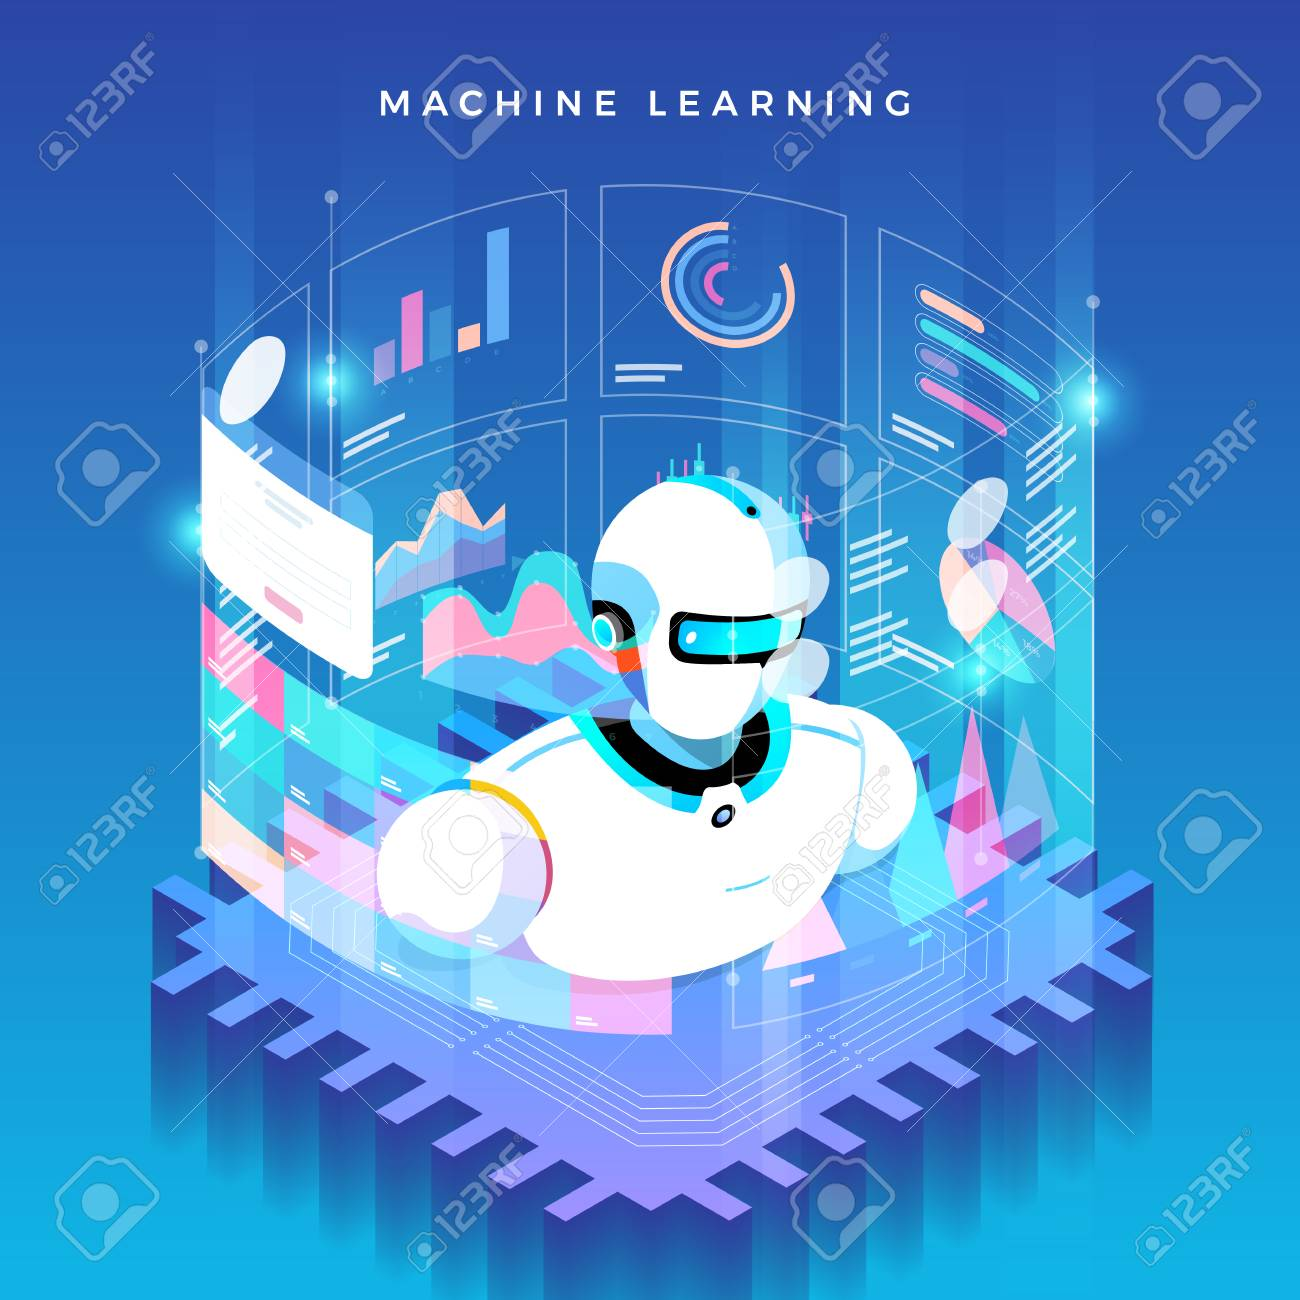 Illustrations concept machine learning via artificial intelligence with technology analysis data and knowledge . Vector isometric illustrate. - 107940575